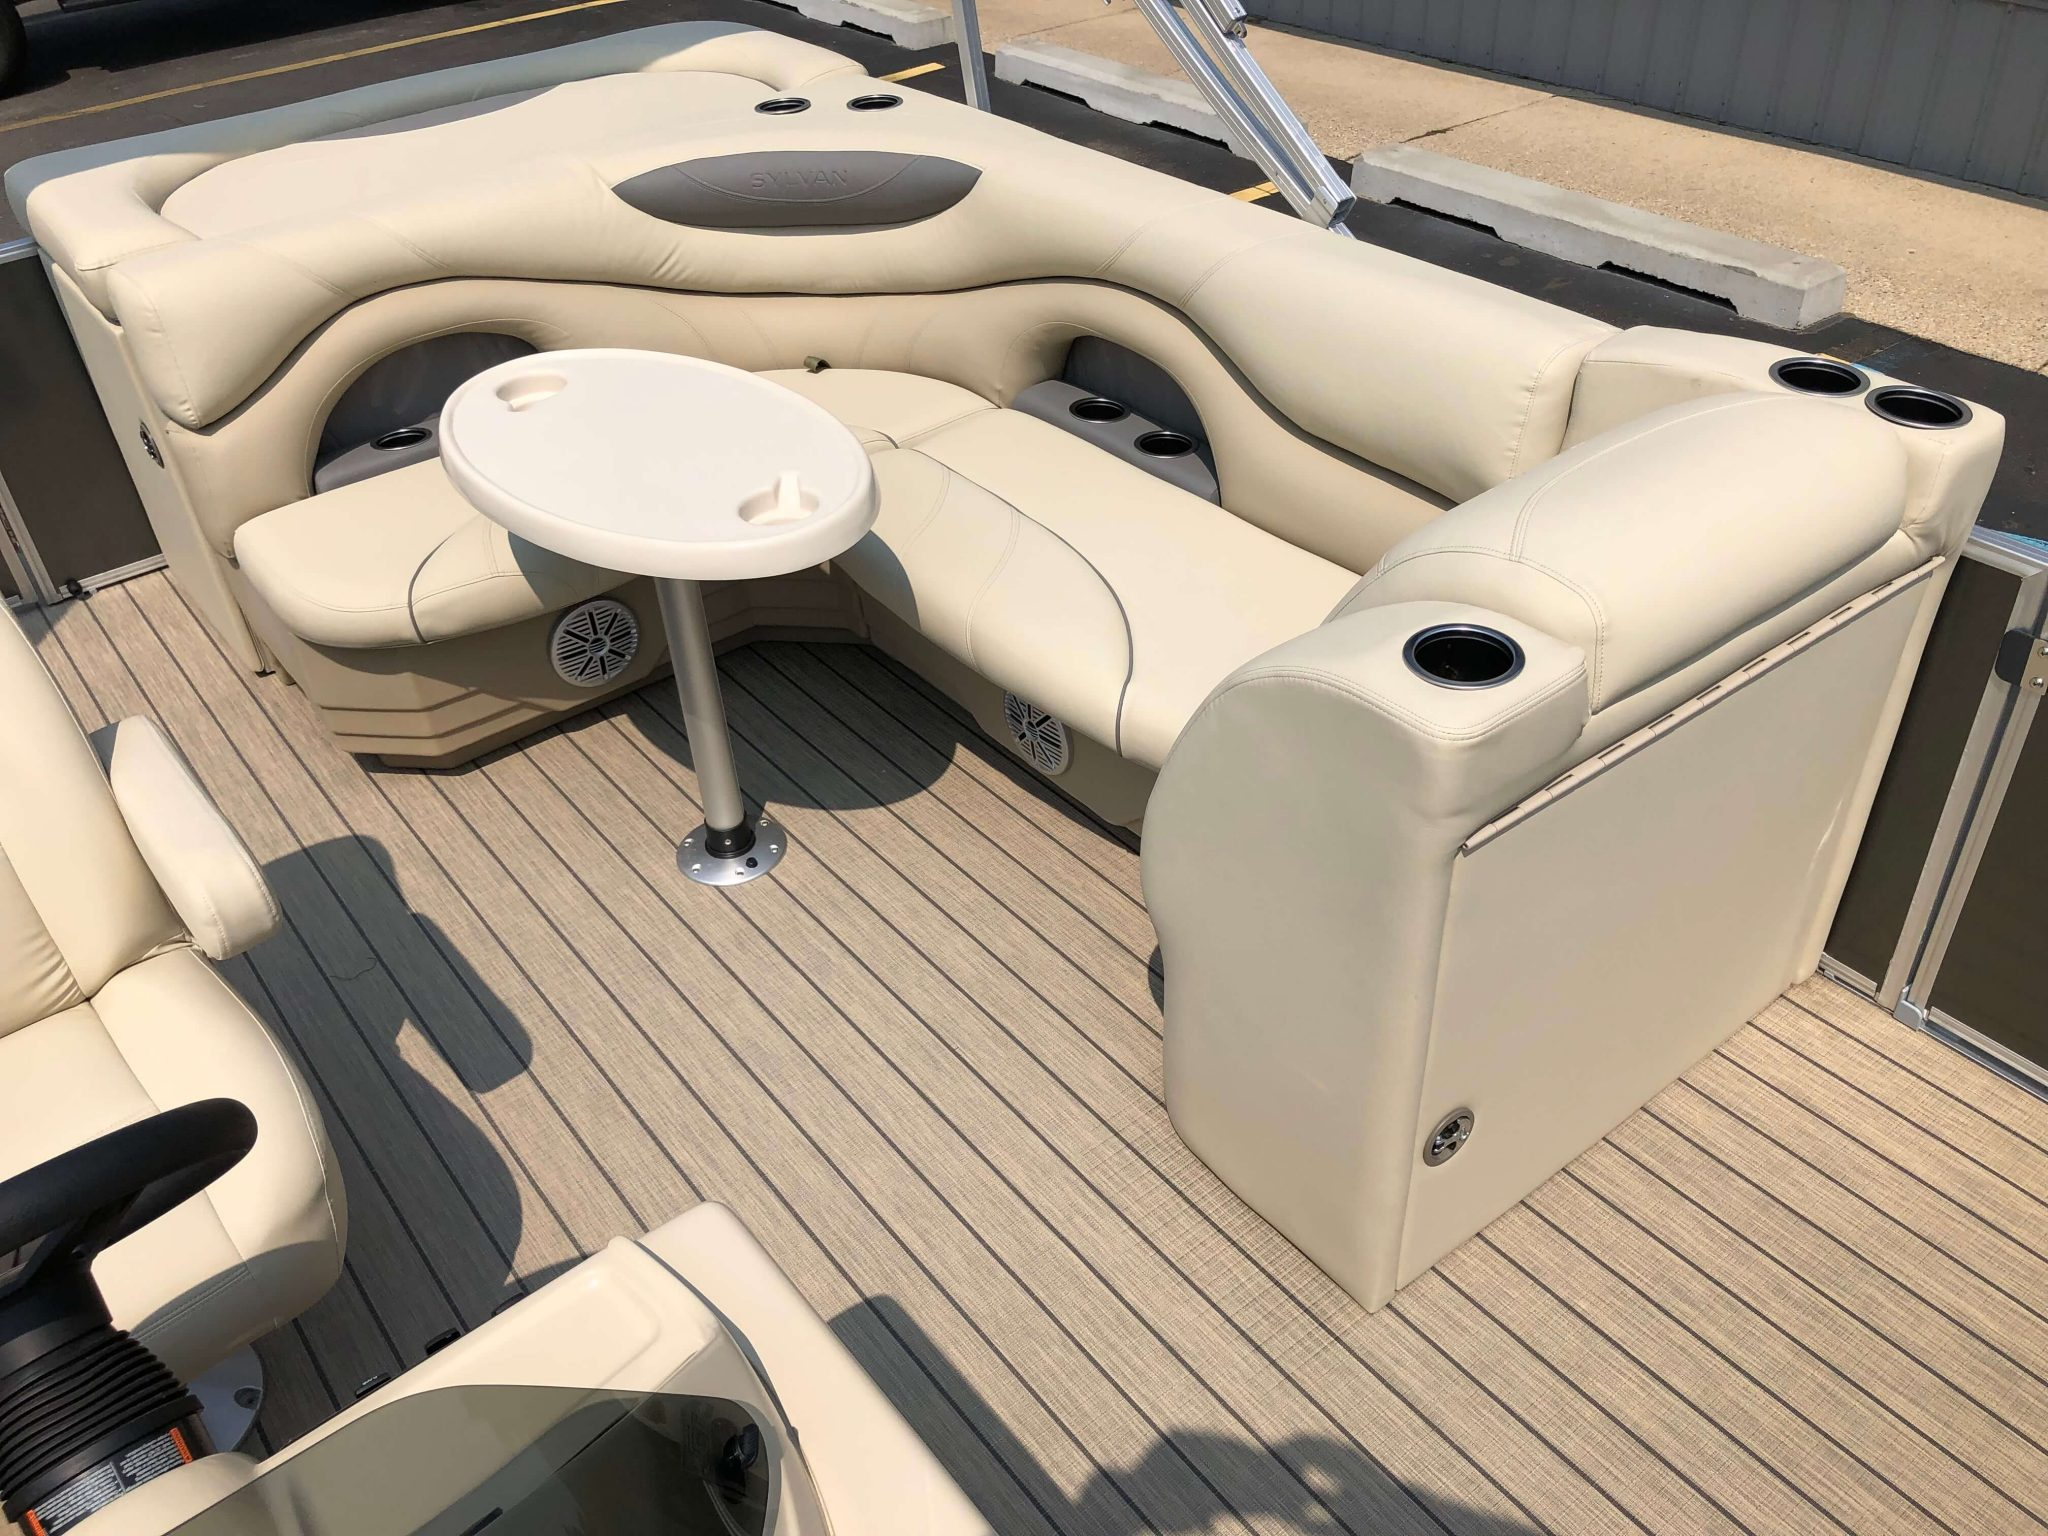 2019 Sylvan 8522 Cruise Carbon Pontoon Boat Seating 3